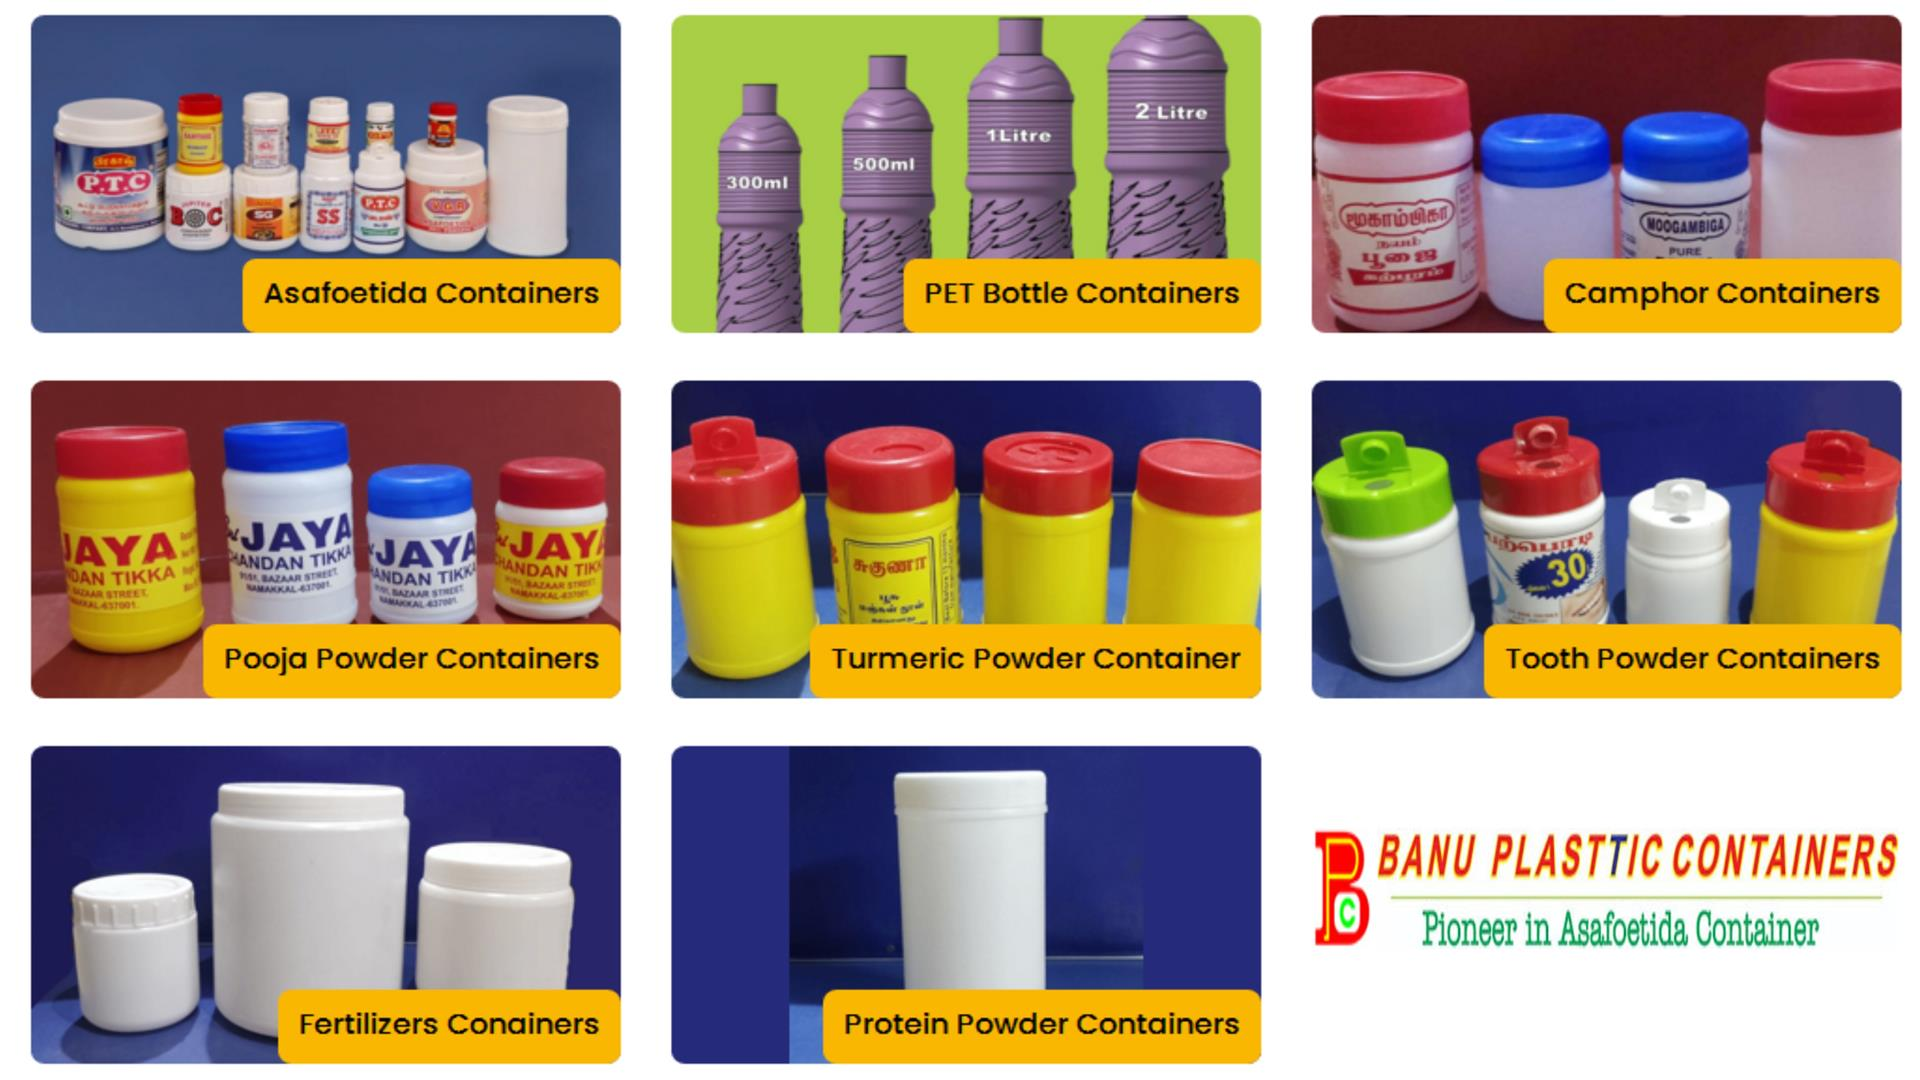 Banu Plastic Containers